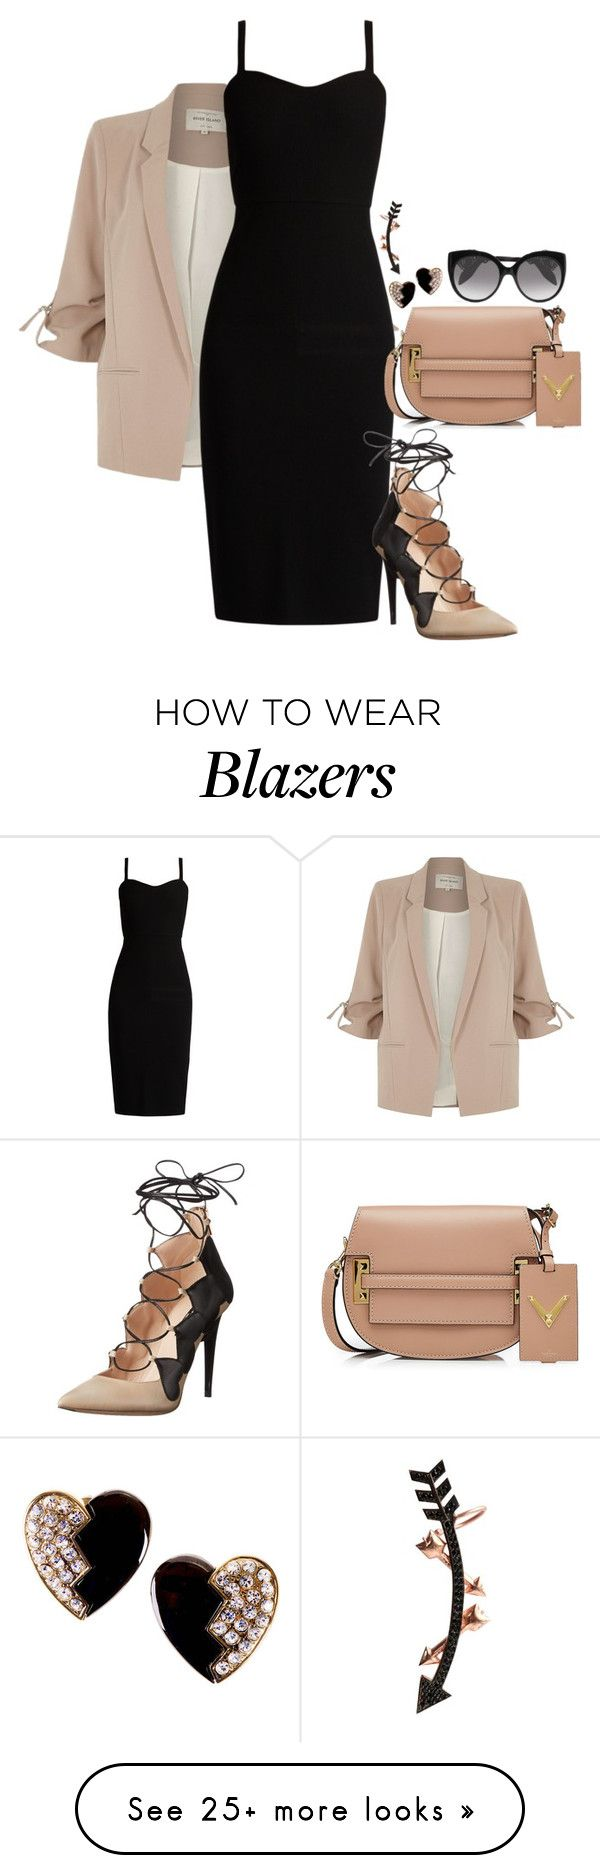 """""""Arsenic"""" by chelsofly on Polyvore featuring River Island, MaxMara, Ruthie Davis, Valentino, Yves Saint Laurent, Alexander McQueen and Wild Hearts"""